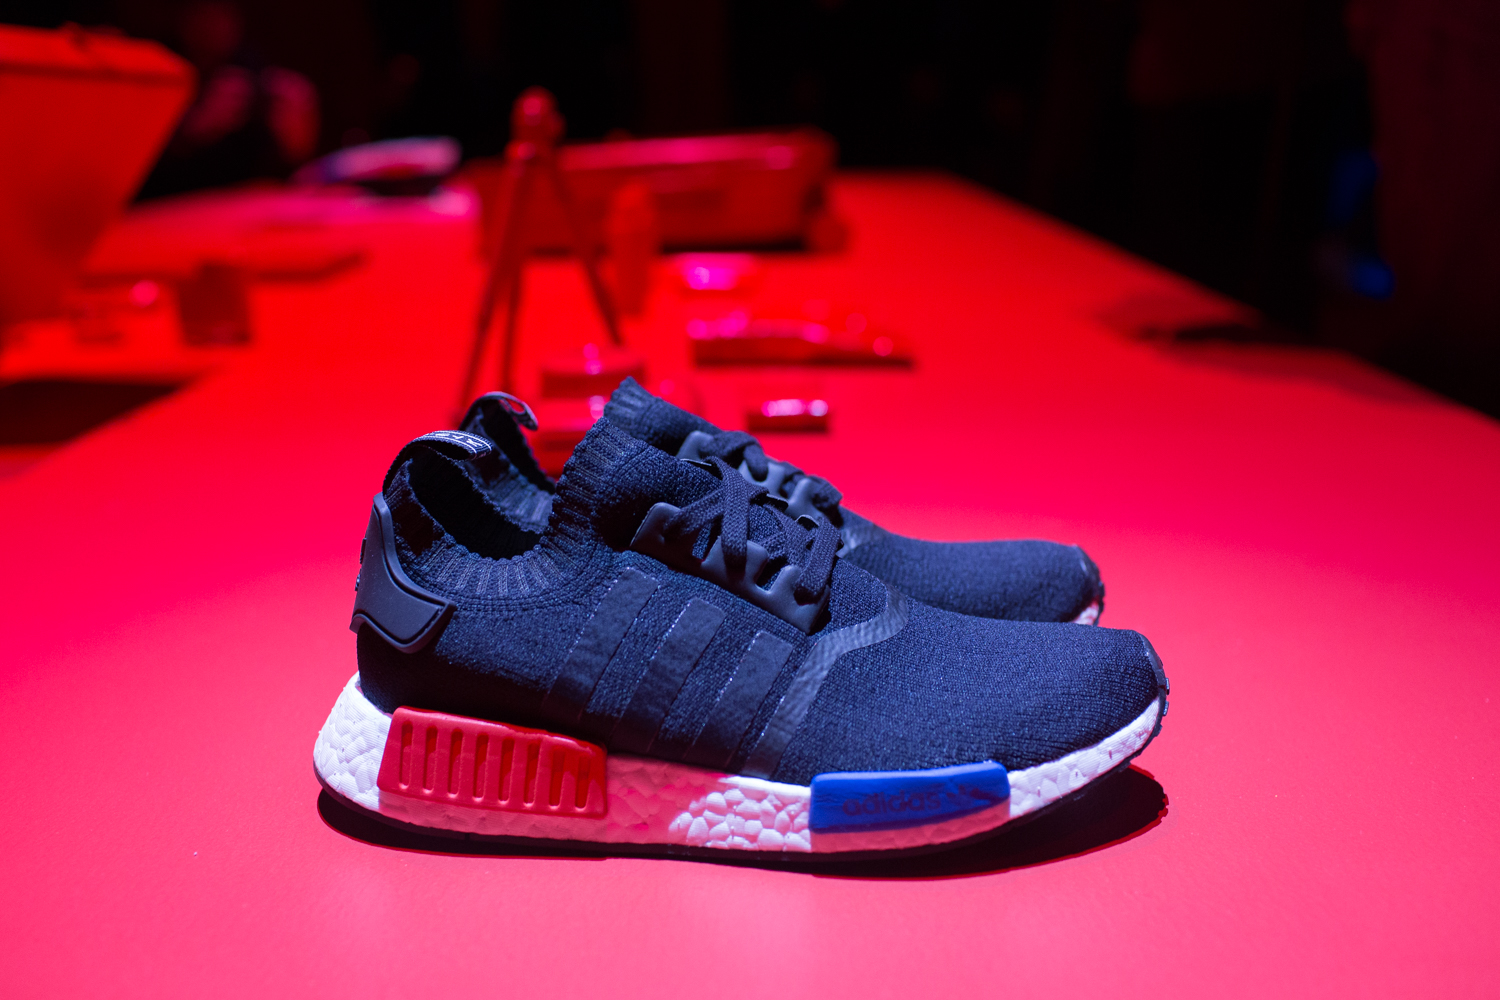 adidas-Originals-NMD-launch-New-York-THE-DAILY-STREET-5